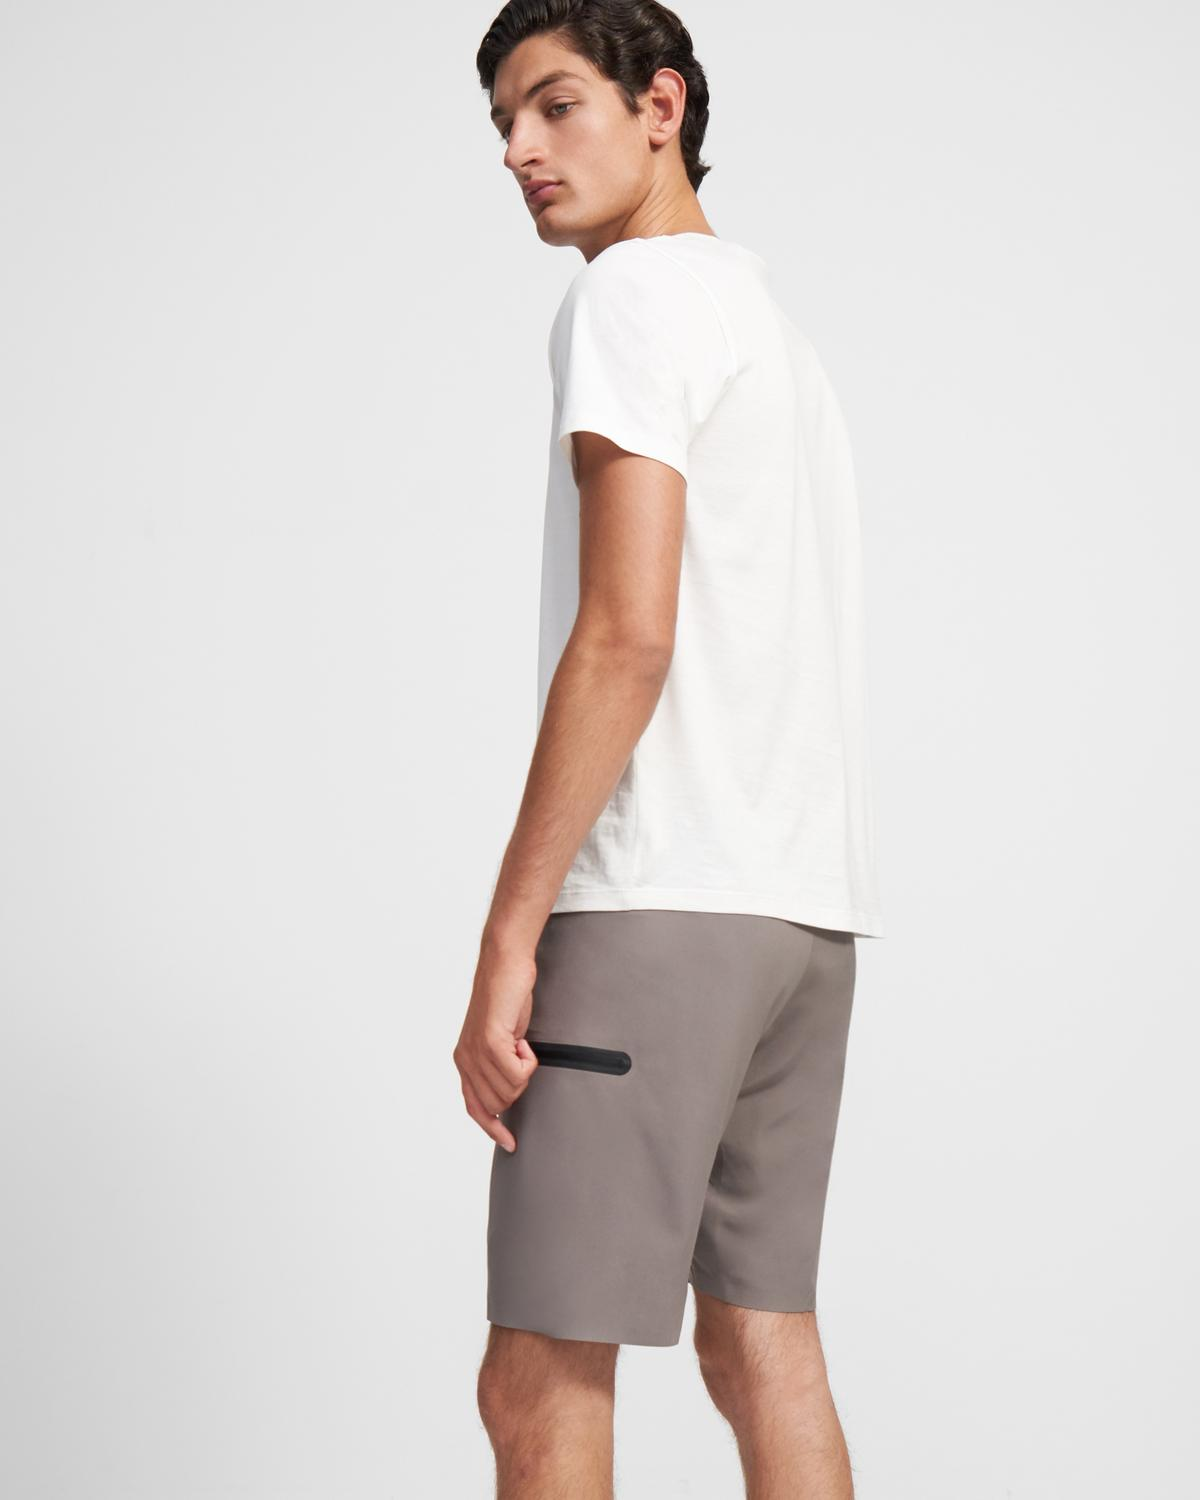 Onia x Theory Ethan Swim Short